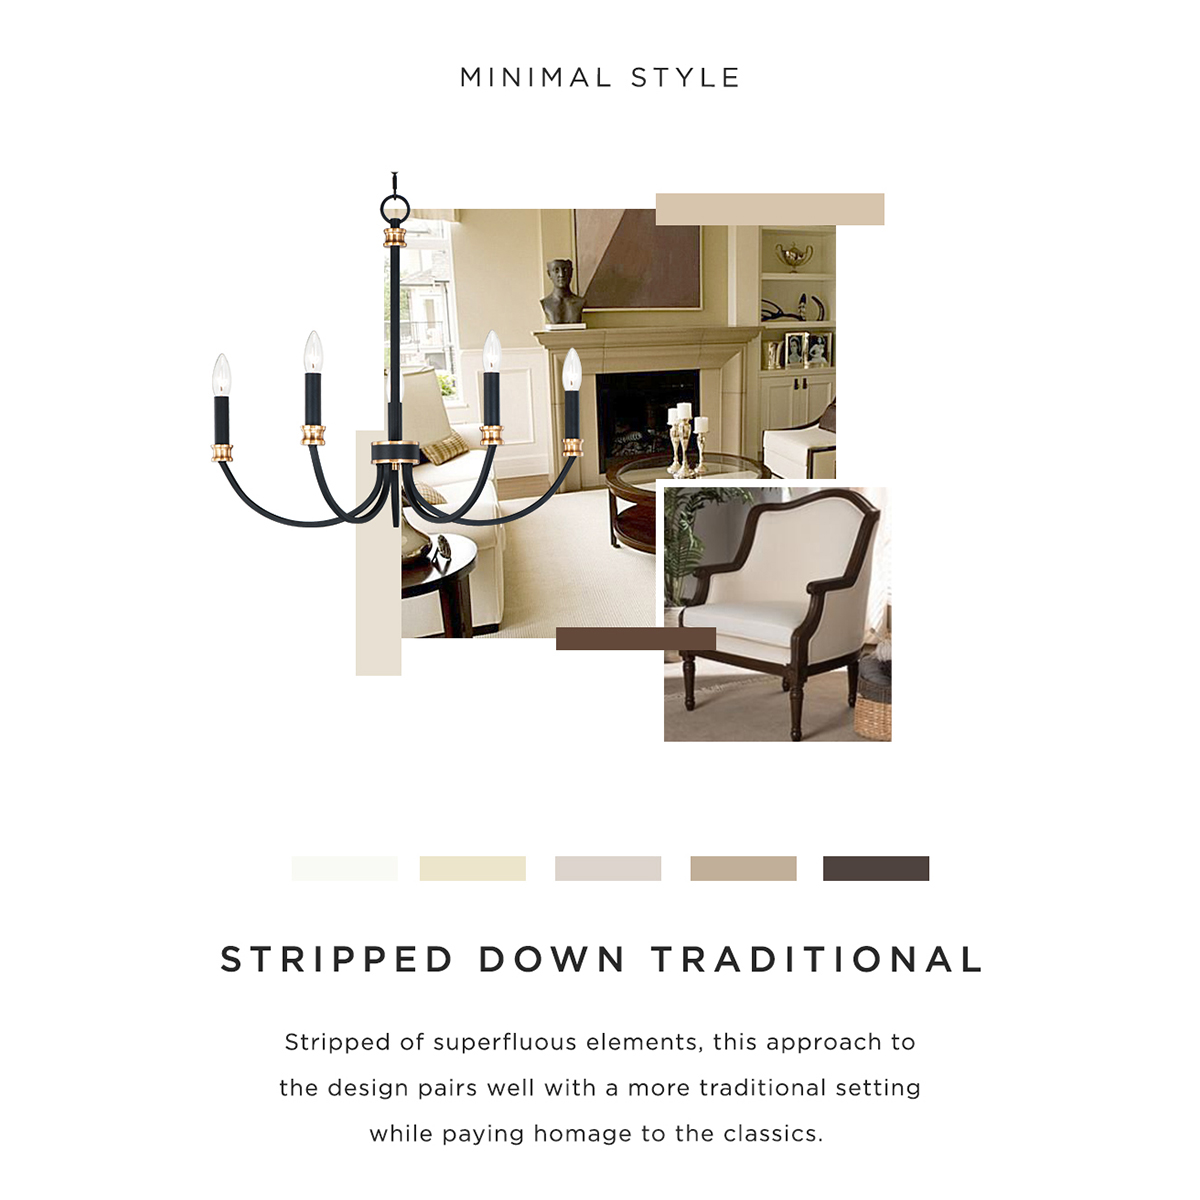 Minimal - Stripped Down Traditional